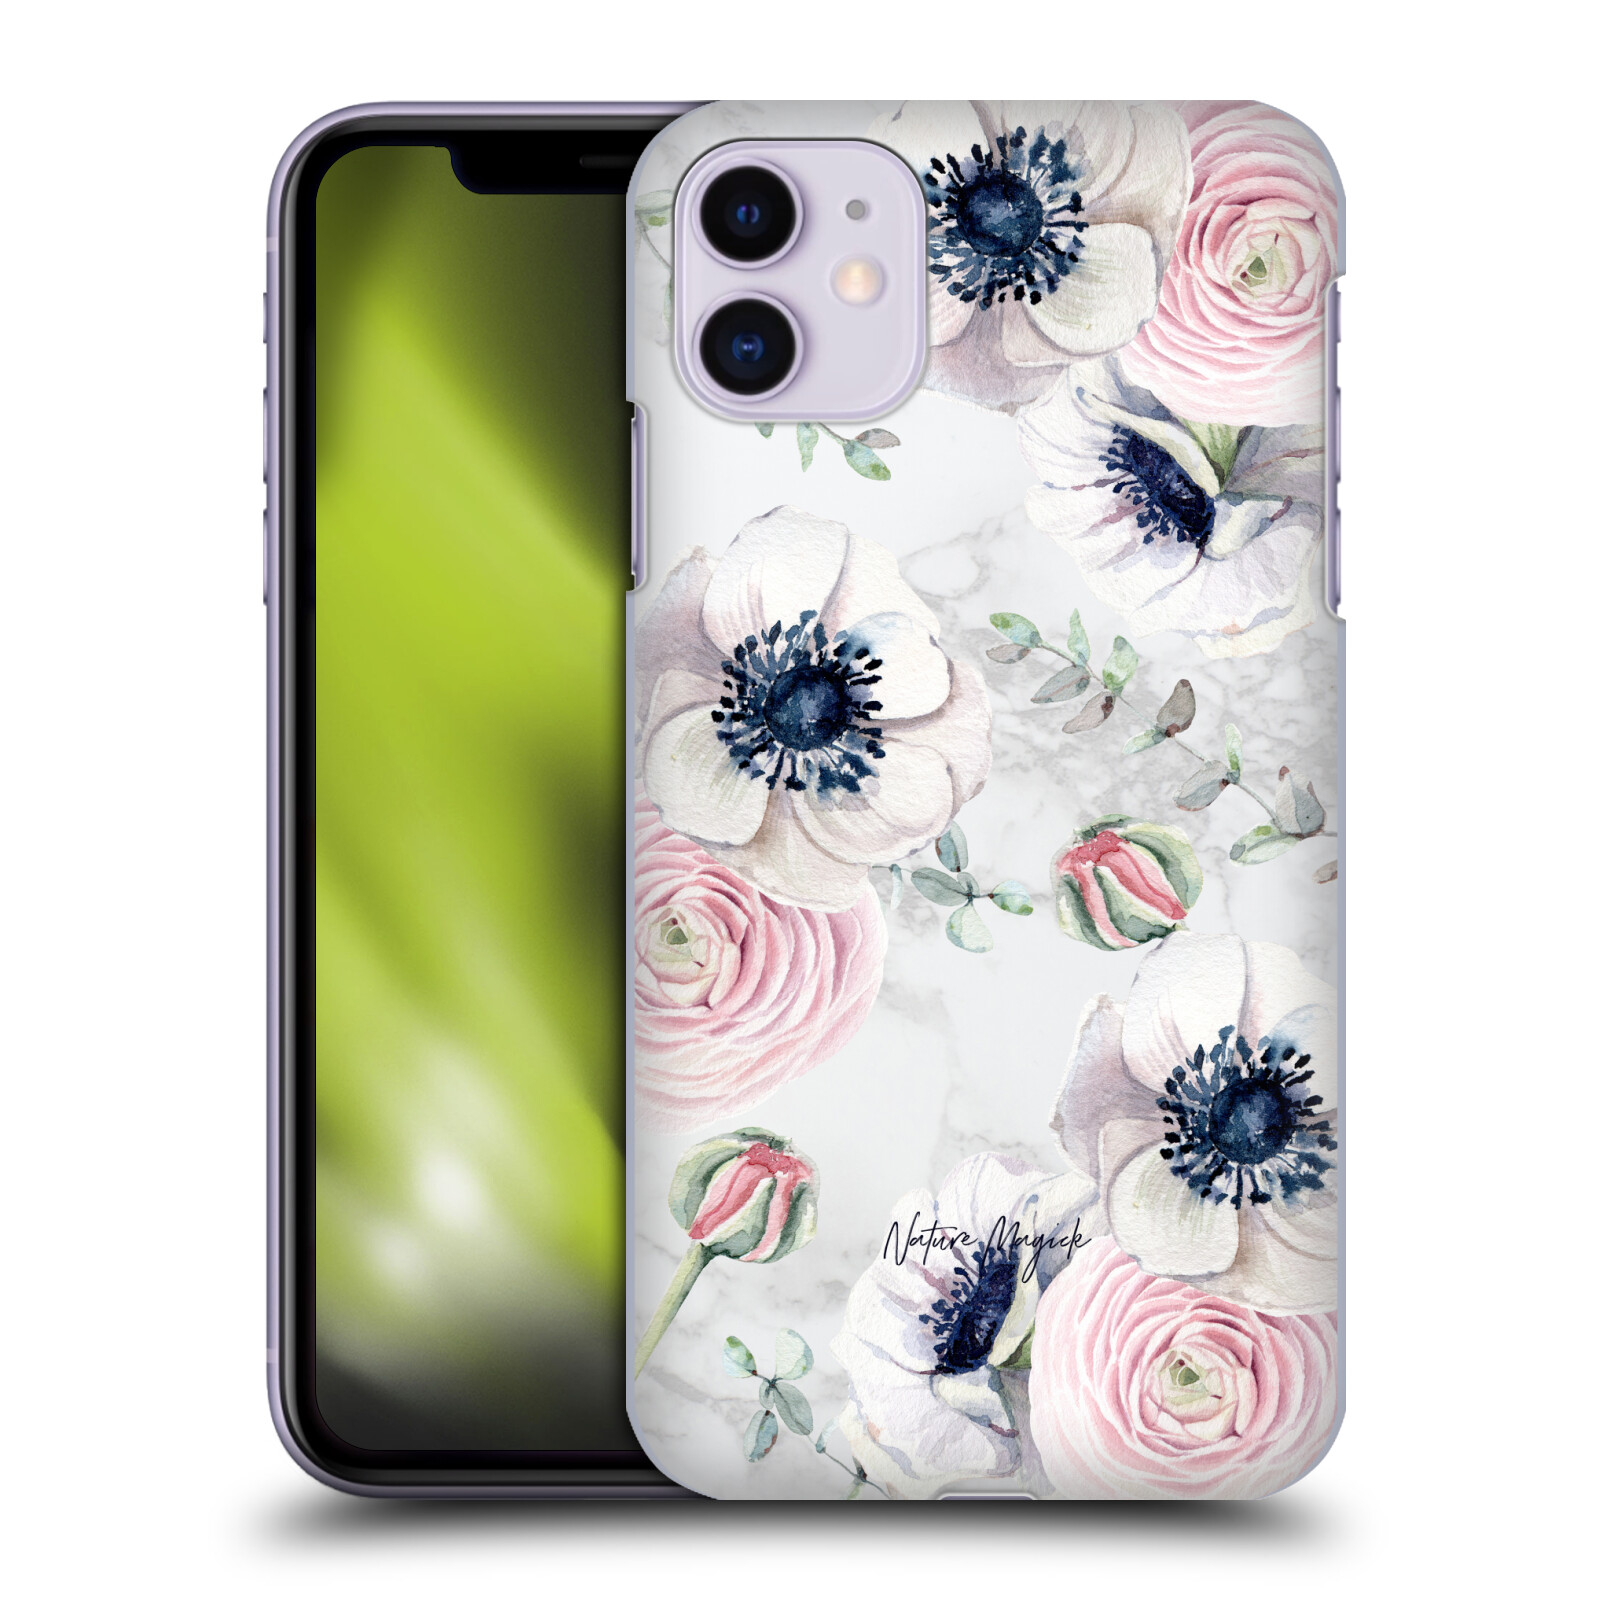 Official Nature Magick Pretty Watercolor Roses Floral Marble Flower Garden Back Case for Apple iPhone 11